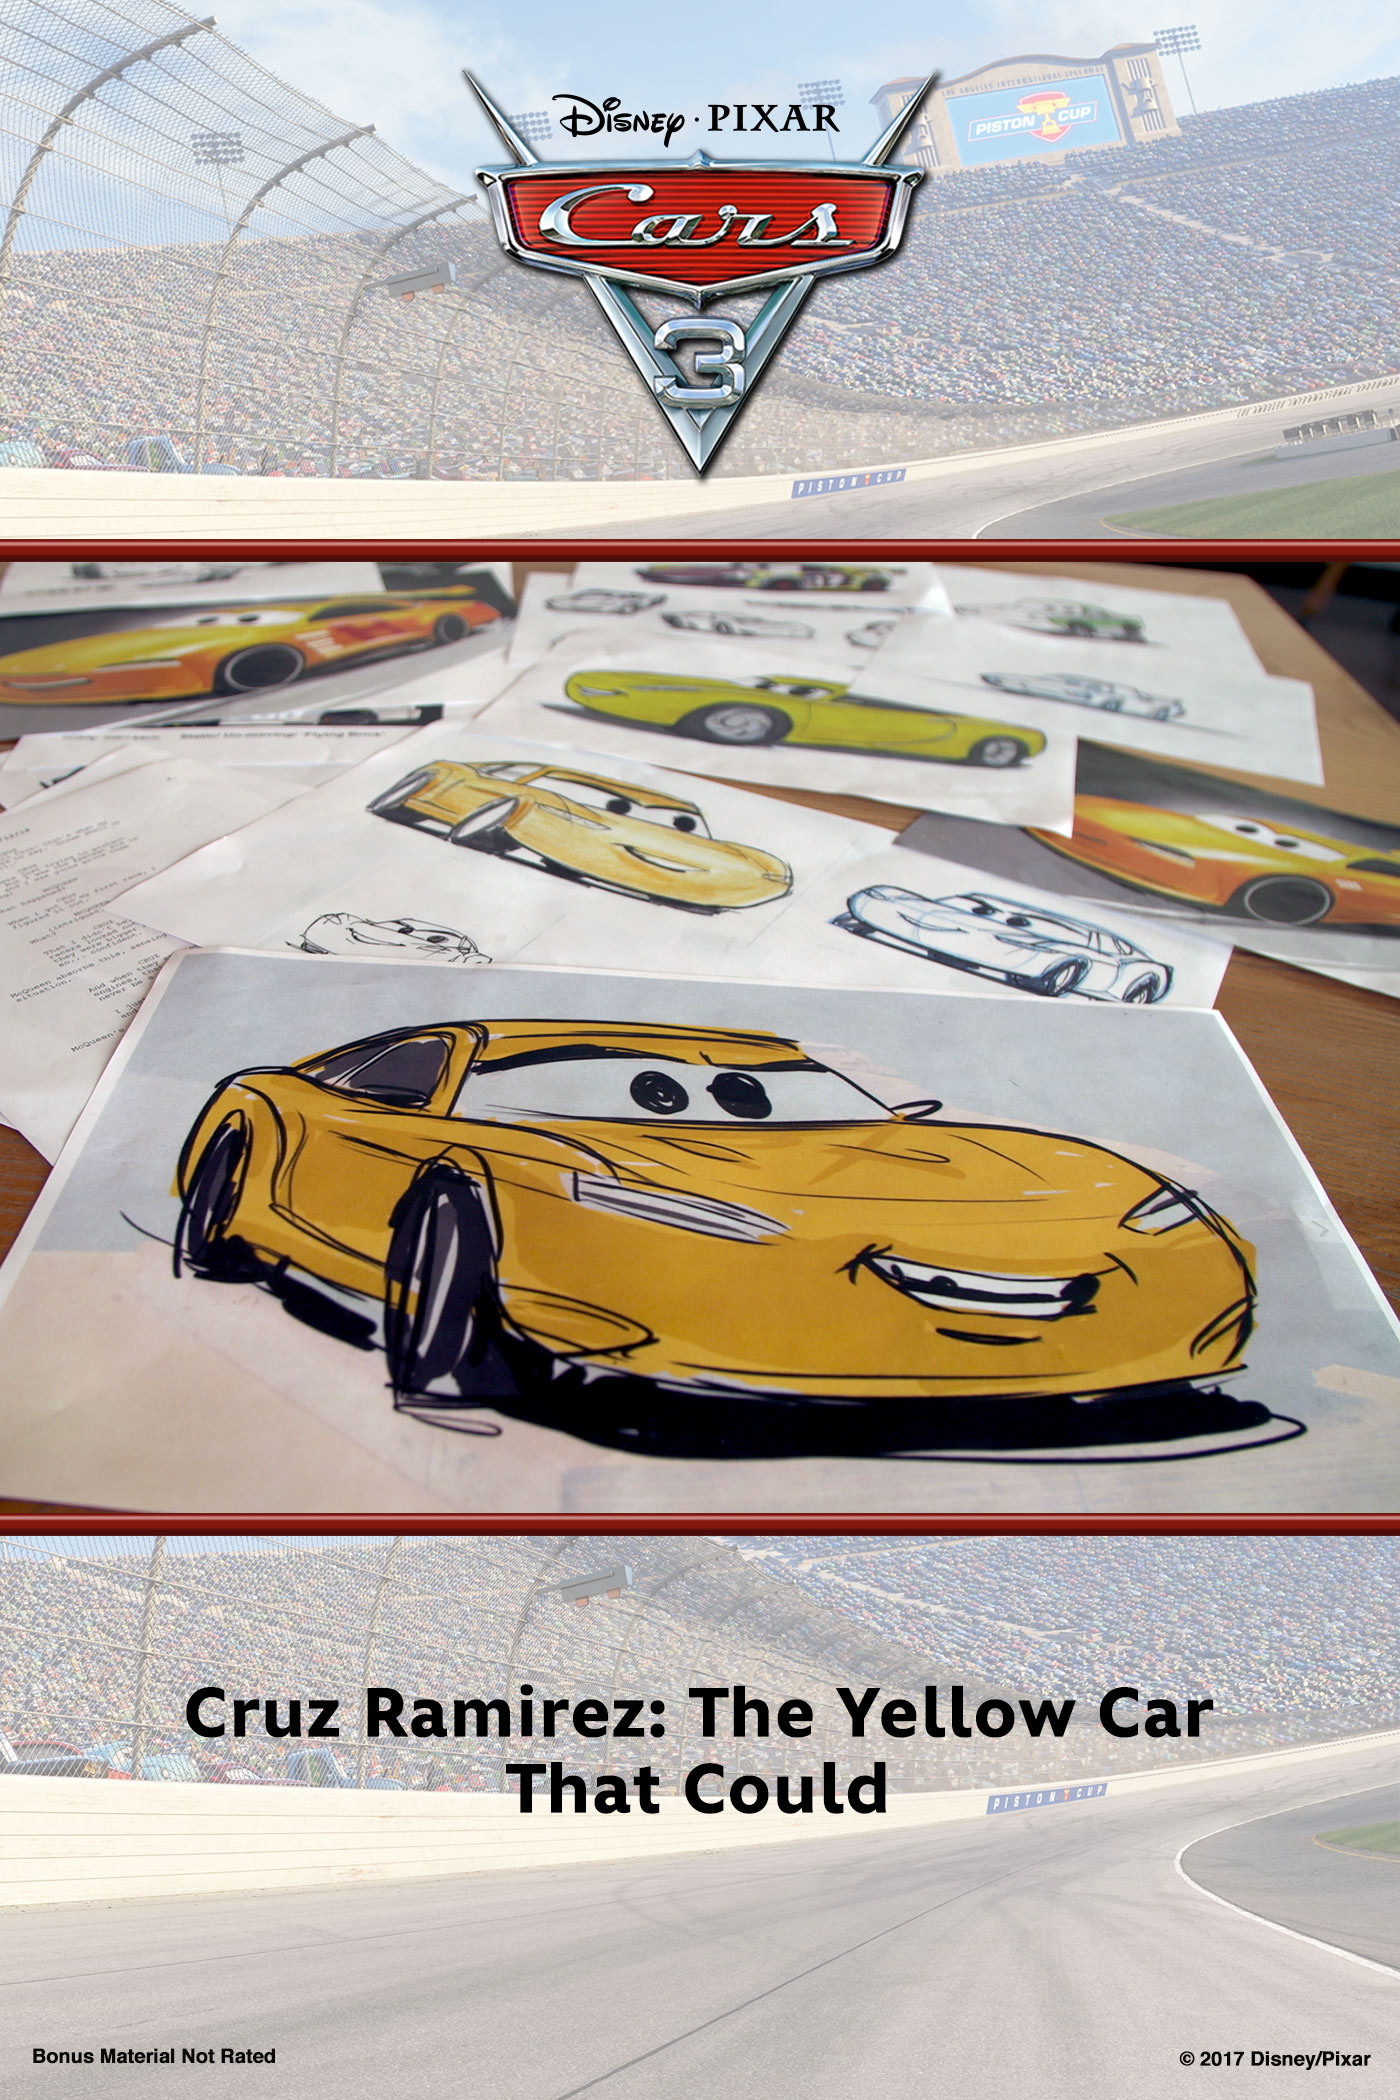 Cruz Ramirez: The Yellow Car That Could